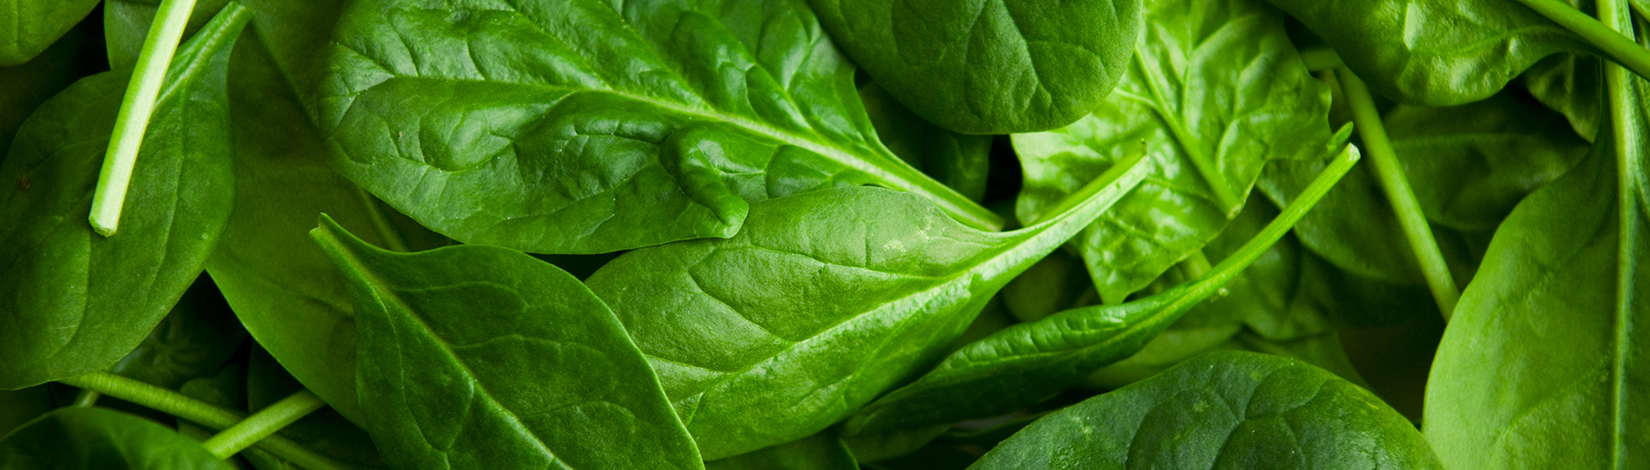 A close up photo of spinach.